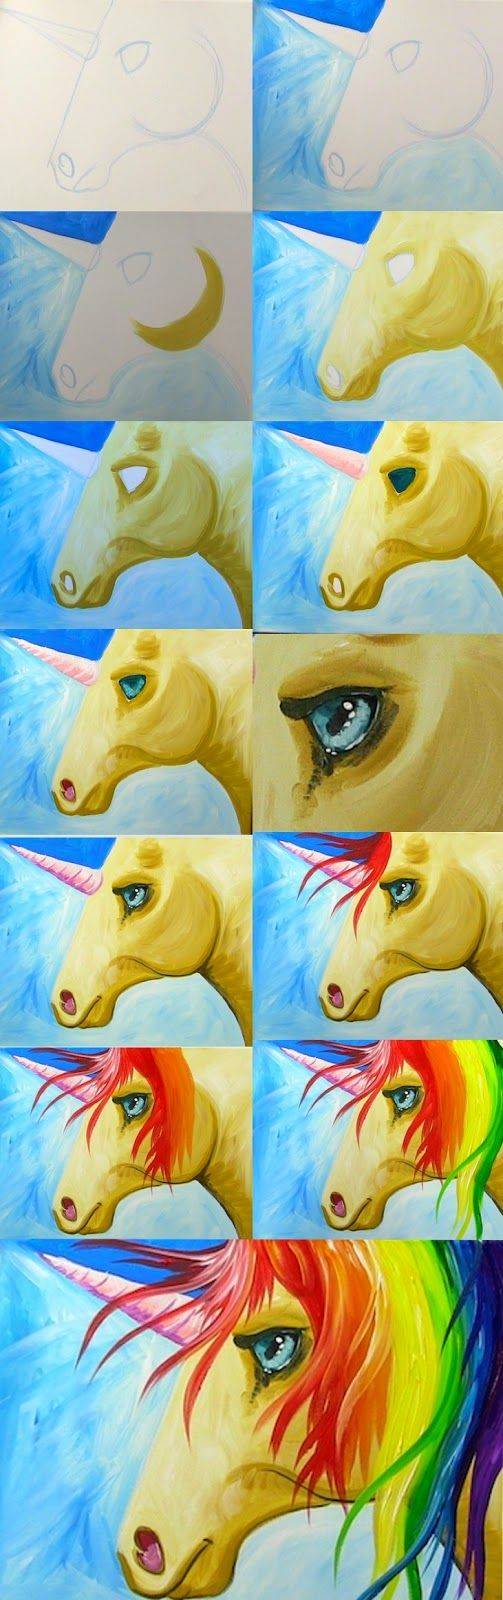 Painting with the Art Sherpa: Easy How to Paint a Rainbow Unicorn Step By Step for the Kid in all of us!